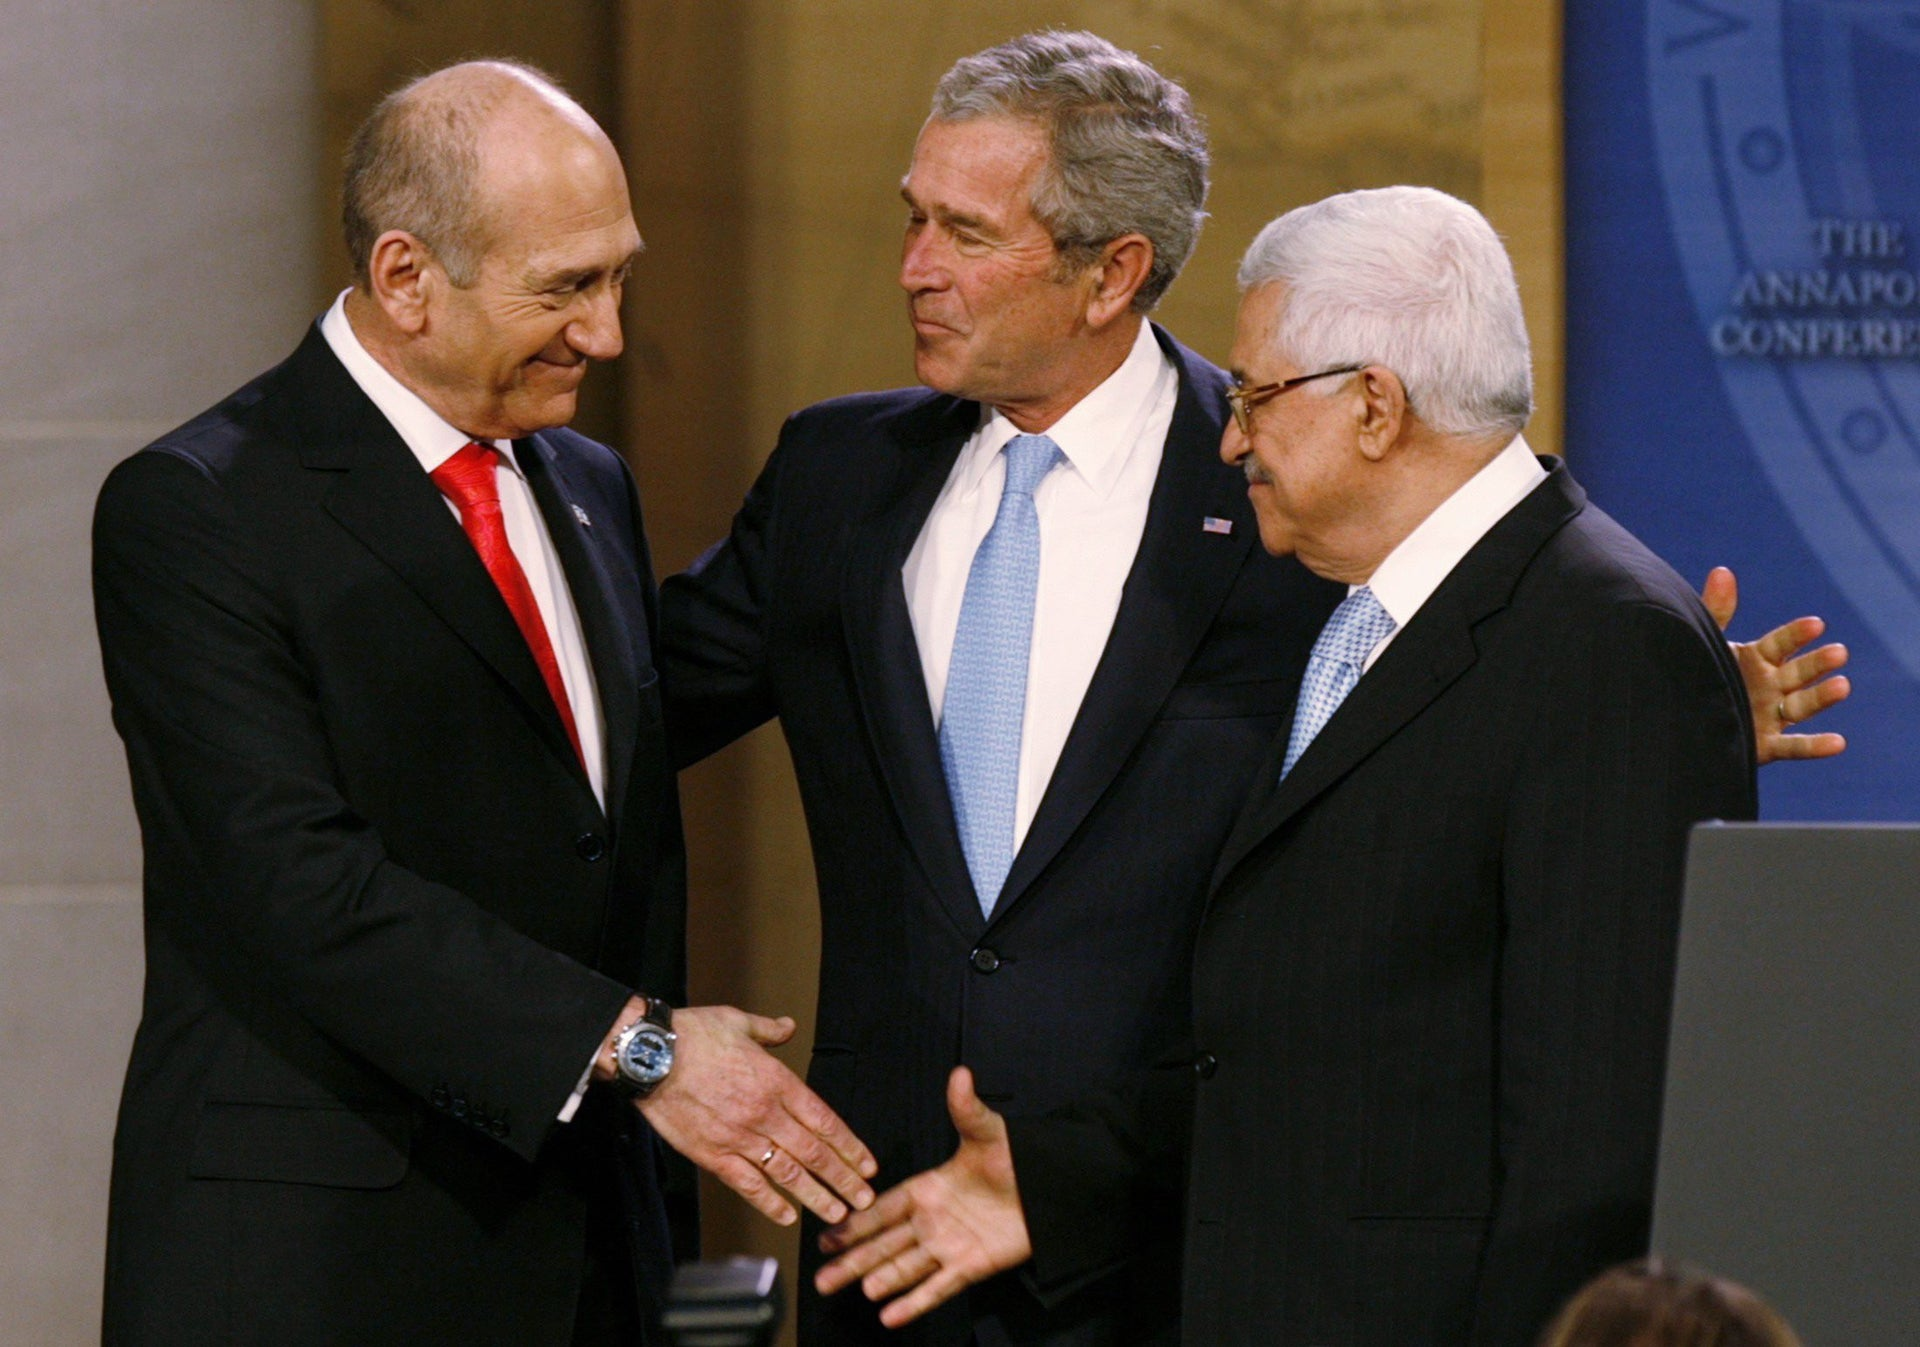 U.S. President George W. Bush standing Prime Minister Ehud Olmert and Palestinian President Mahmoud Abbas at the Israel-Palestinian Peace Conference at the U.S. Naval Academy in Annapolis, November 27, 2007.